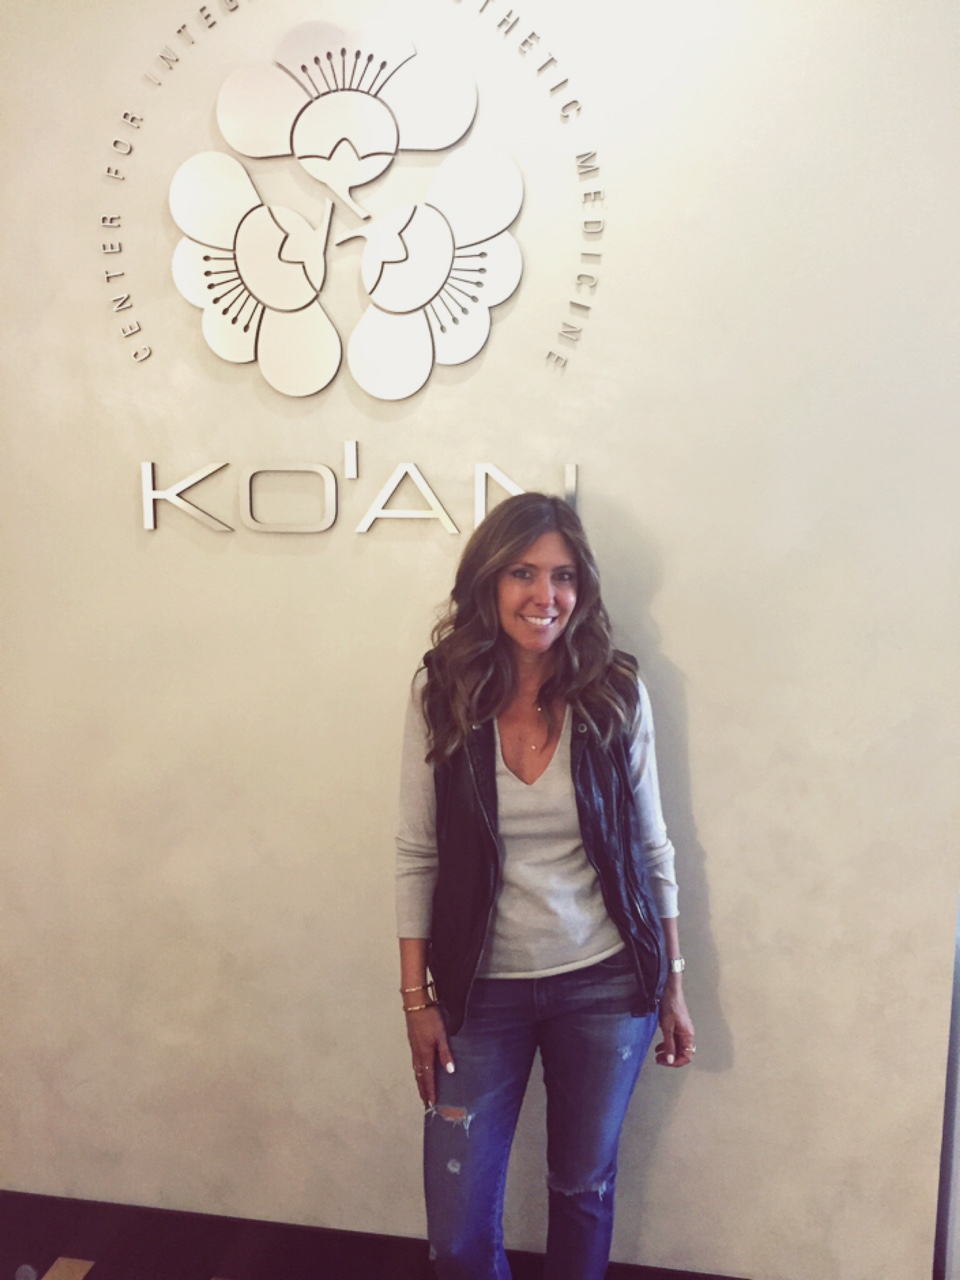 One of my favorite go-to places for body and face treatments is The KO'AN center located at 1301 20th Street, Suite 150A, Santa Monica. This beautiful center for integrated aesthetic medicine offers a variety of services for body and face restyling.